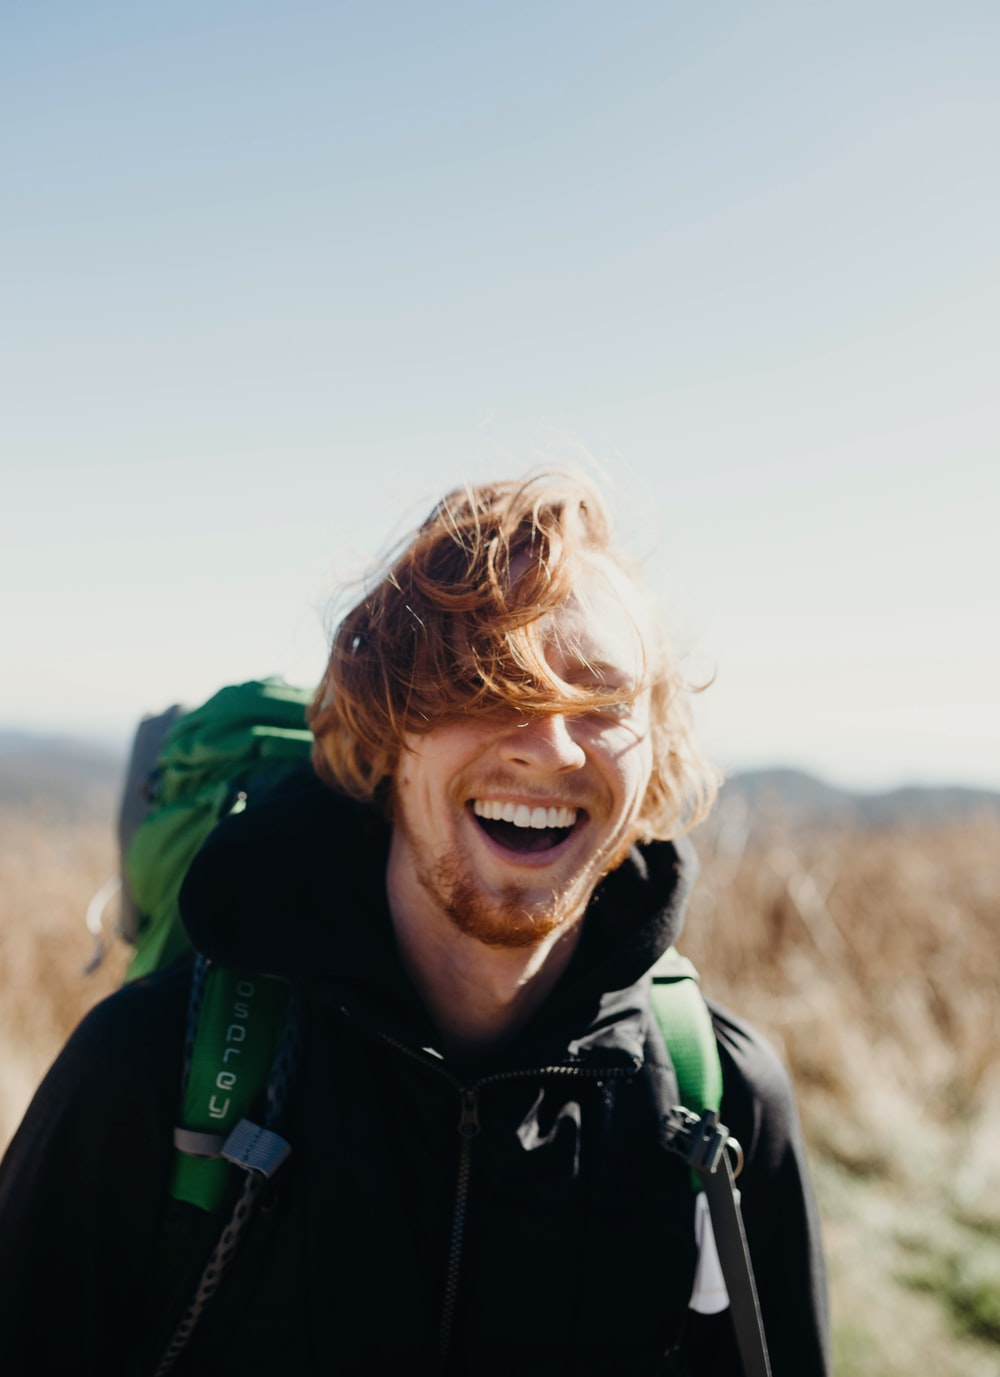 smiling man with green mountaineering bag during daytime